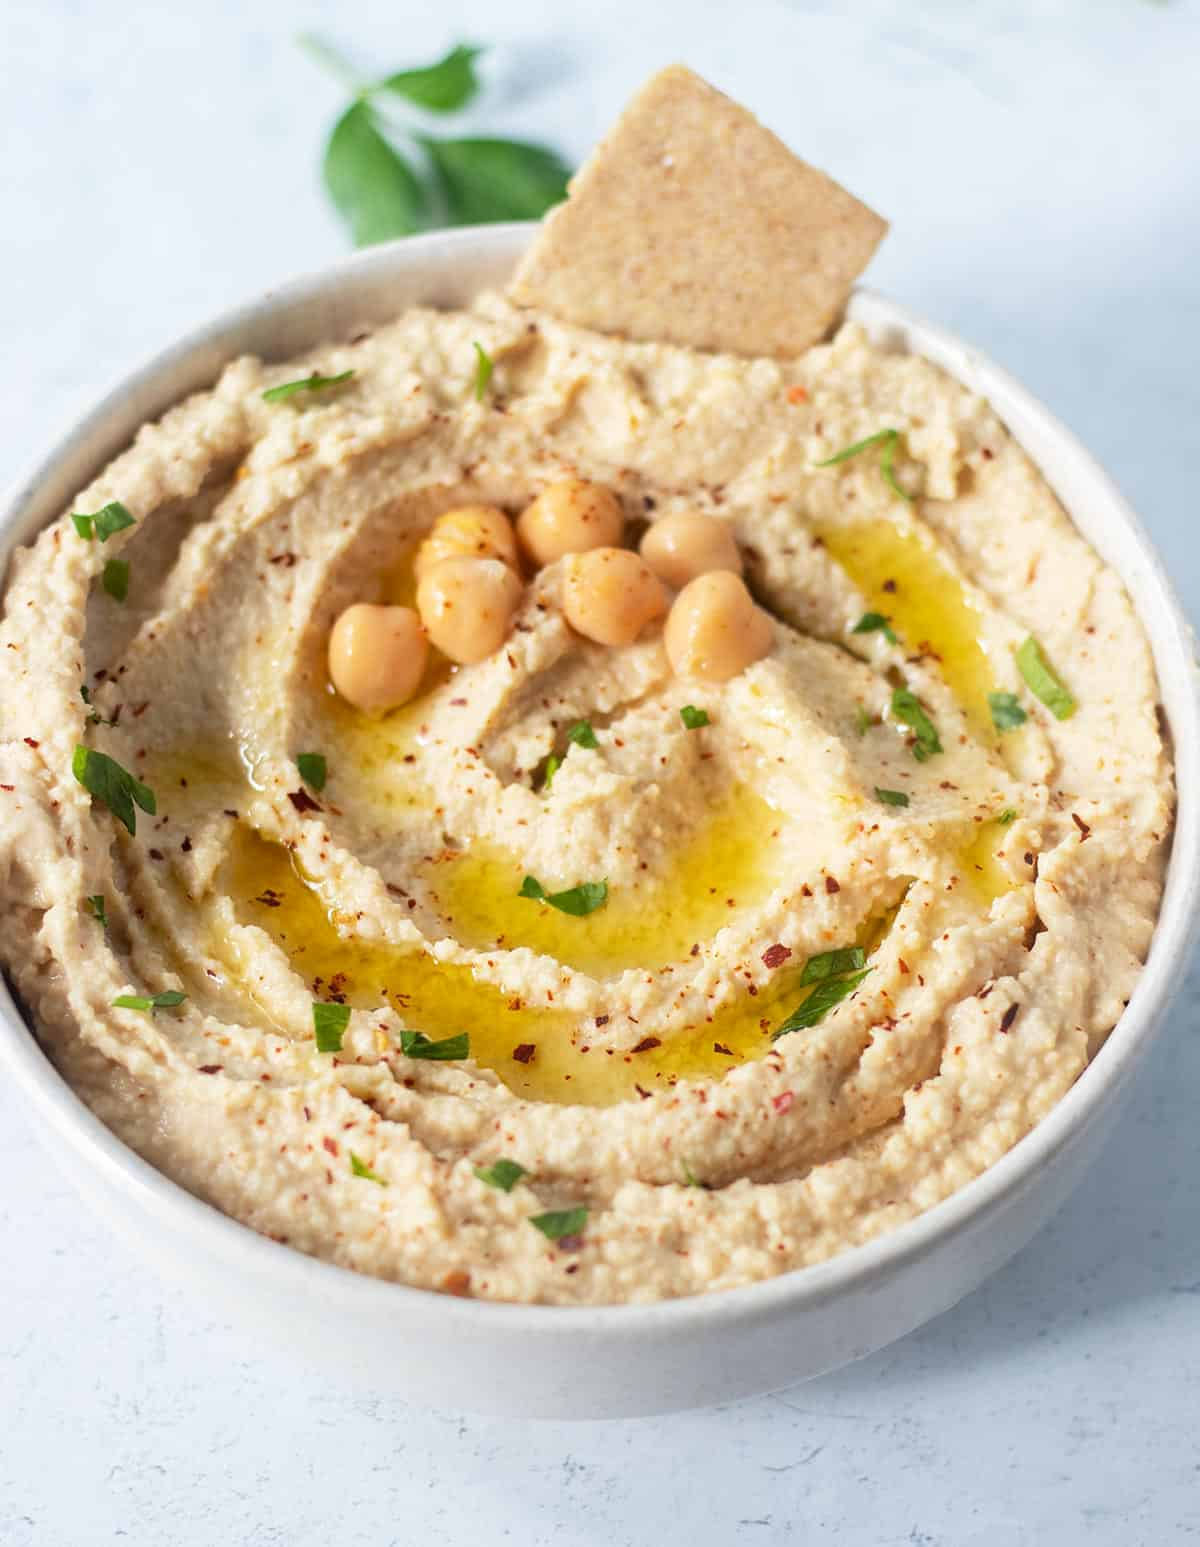 roasted garlic hummus in a white bowl garnished with olive oil, chickpeas, fresh chopped parsley and red chili pepper flakes. A cracker in the bowl for dipping.